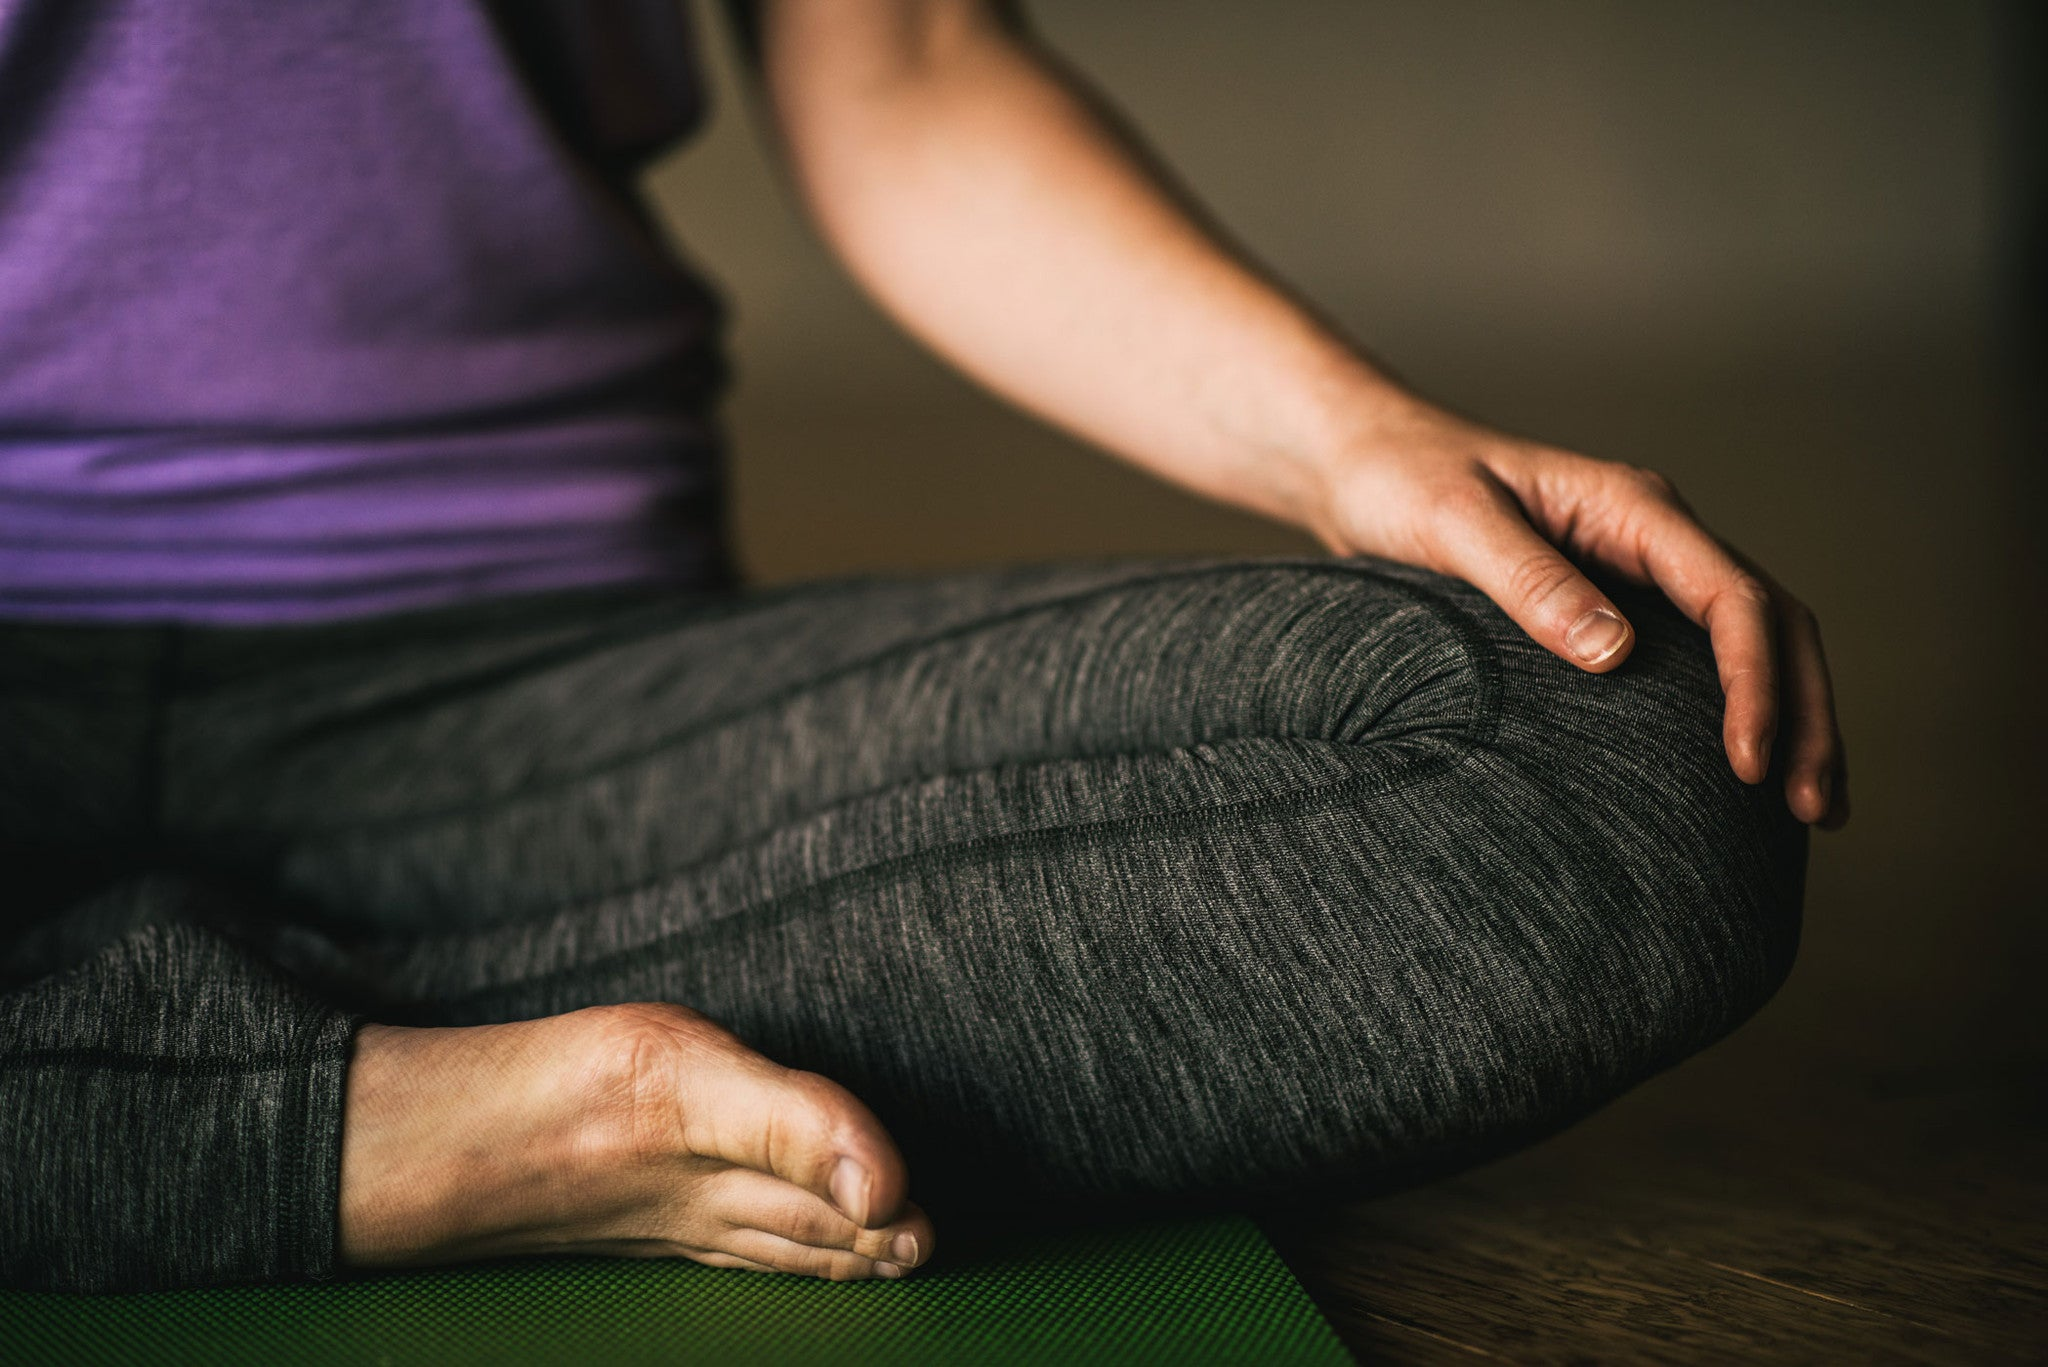 Do You Have to Sit Cross-Legged in Lotus Position to Meditate? - Gaiam